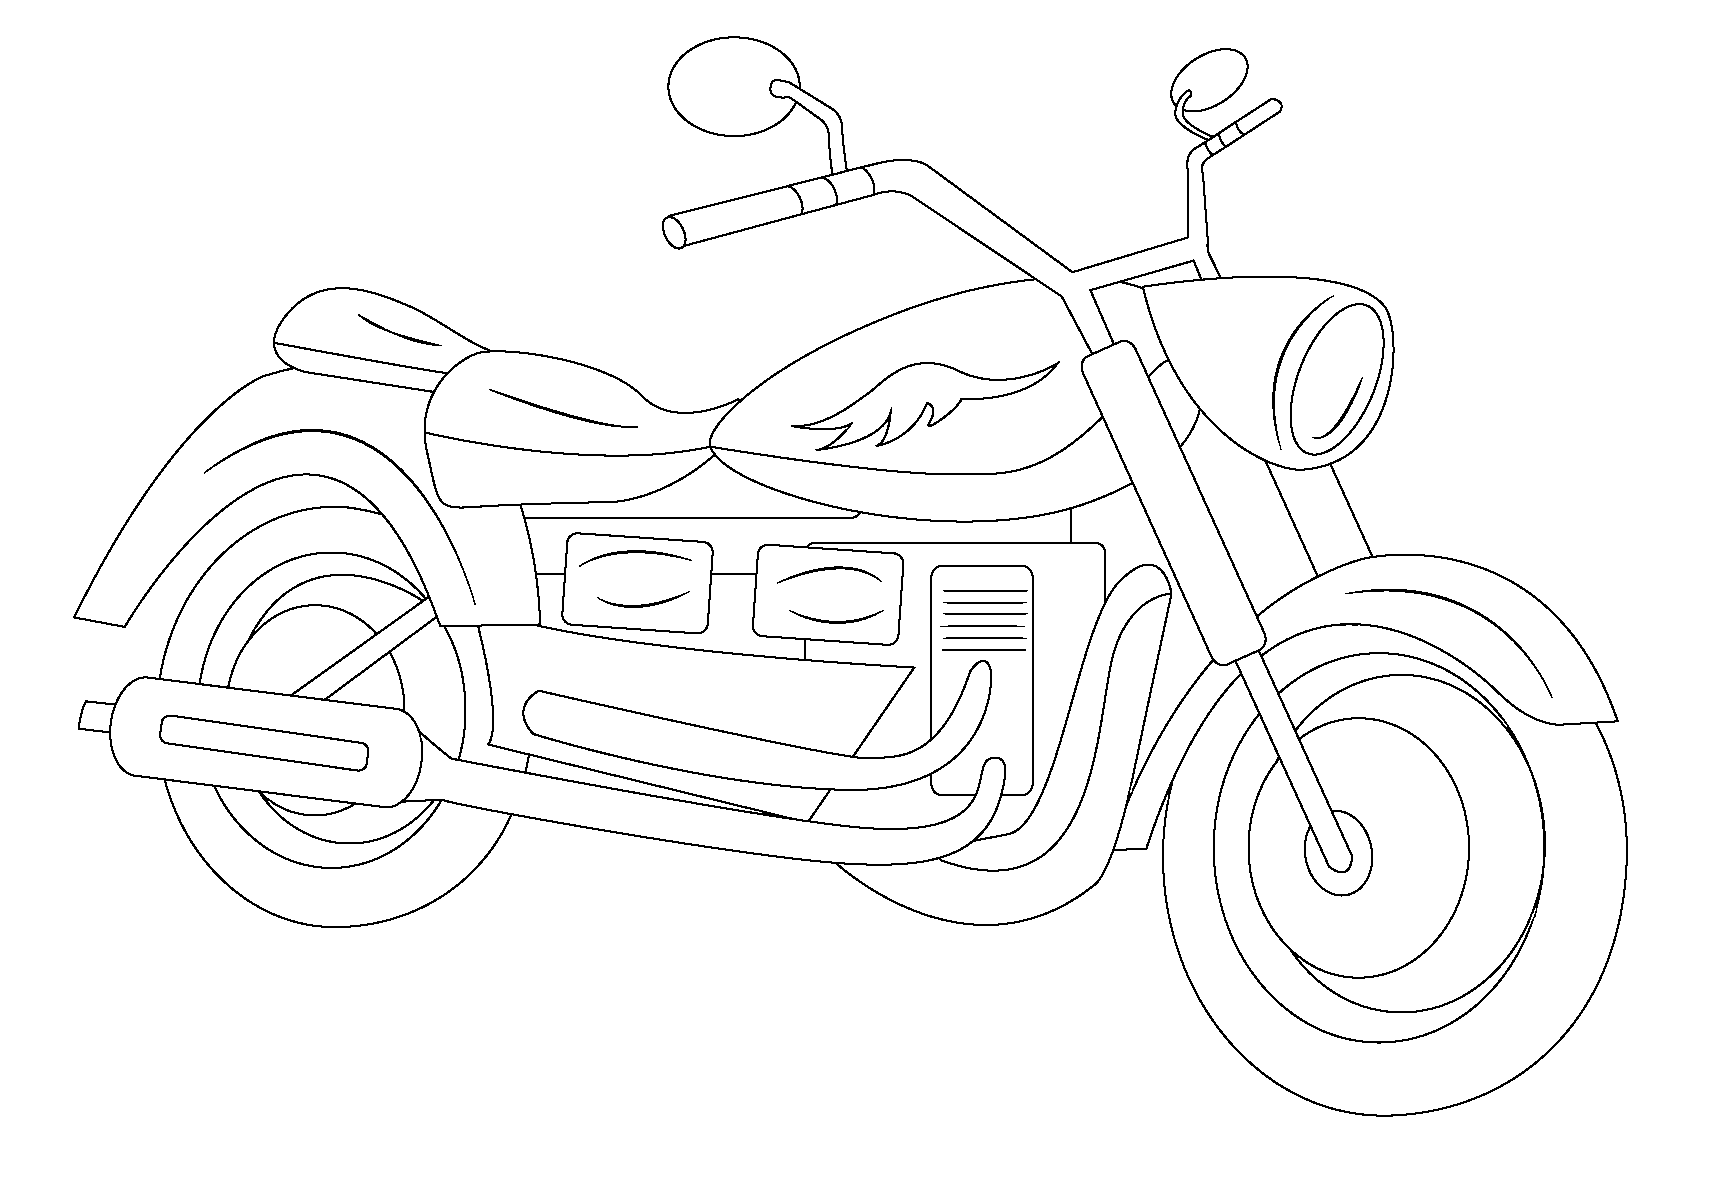 coloring sheet motorcycle coloring pages motorcycle coloring pages coloring kids pages sheet coloring motorcycle coloring